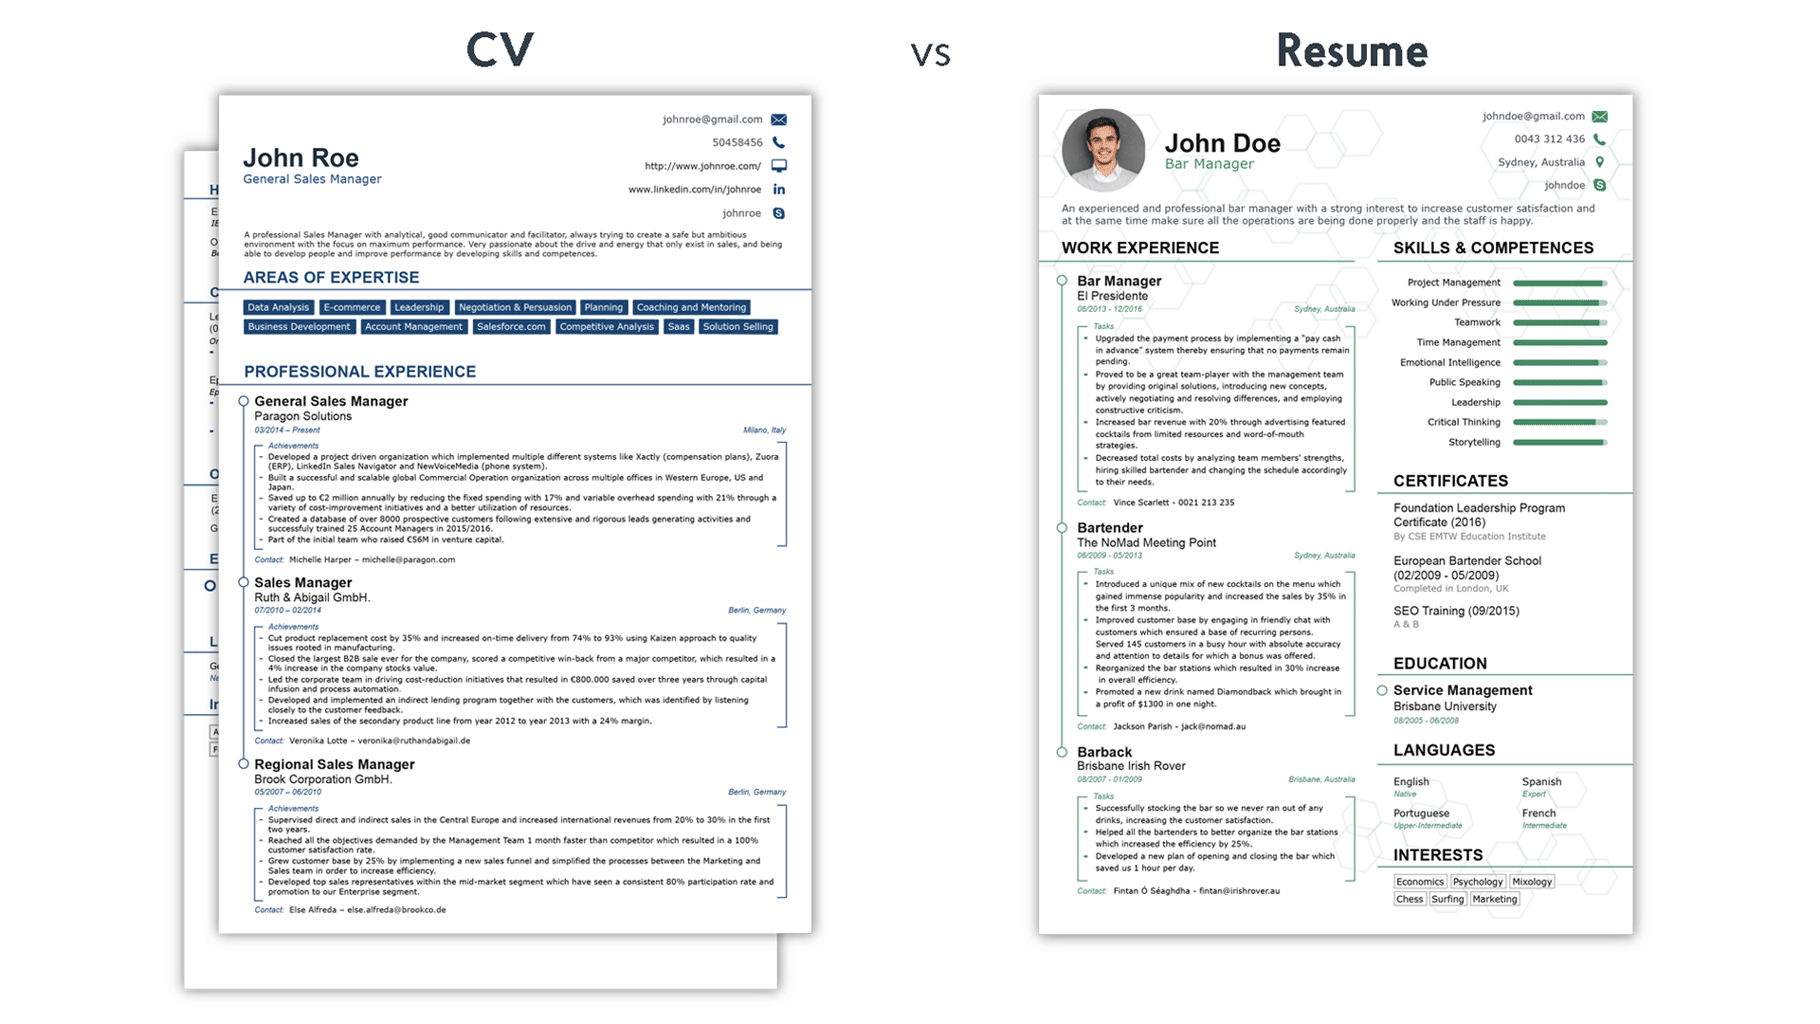 CV vs Resume - What is the Difference? [+Examples]